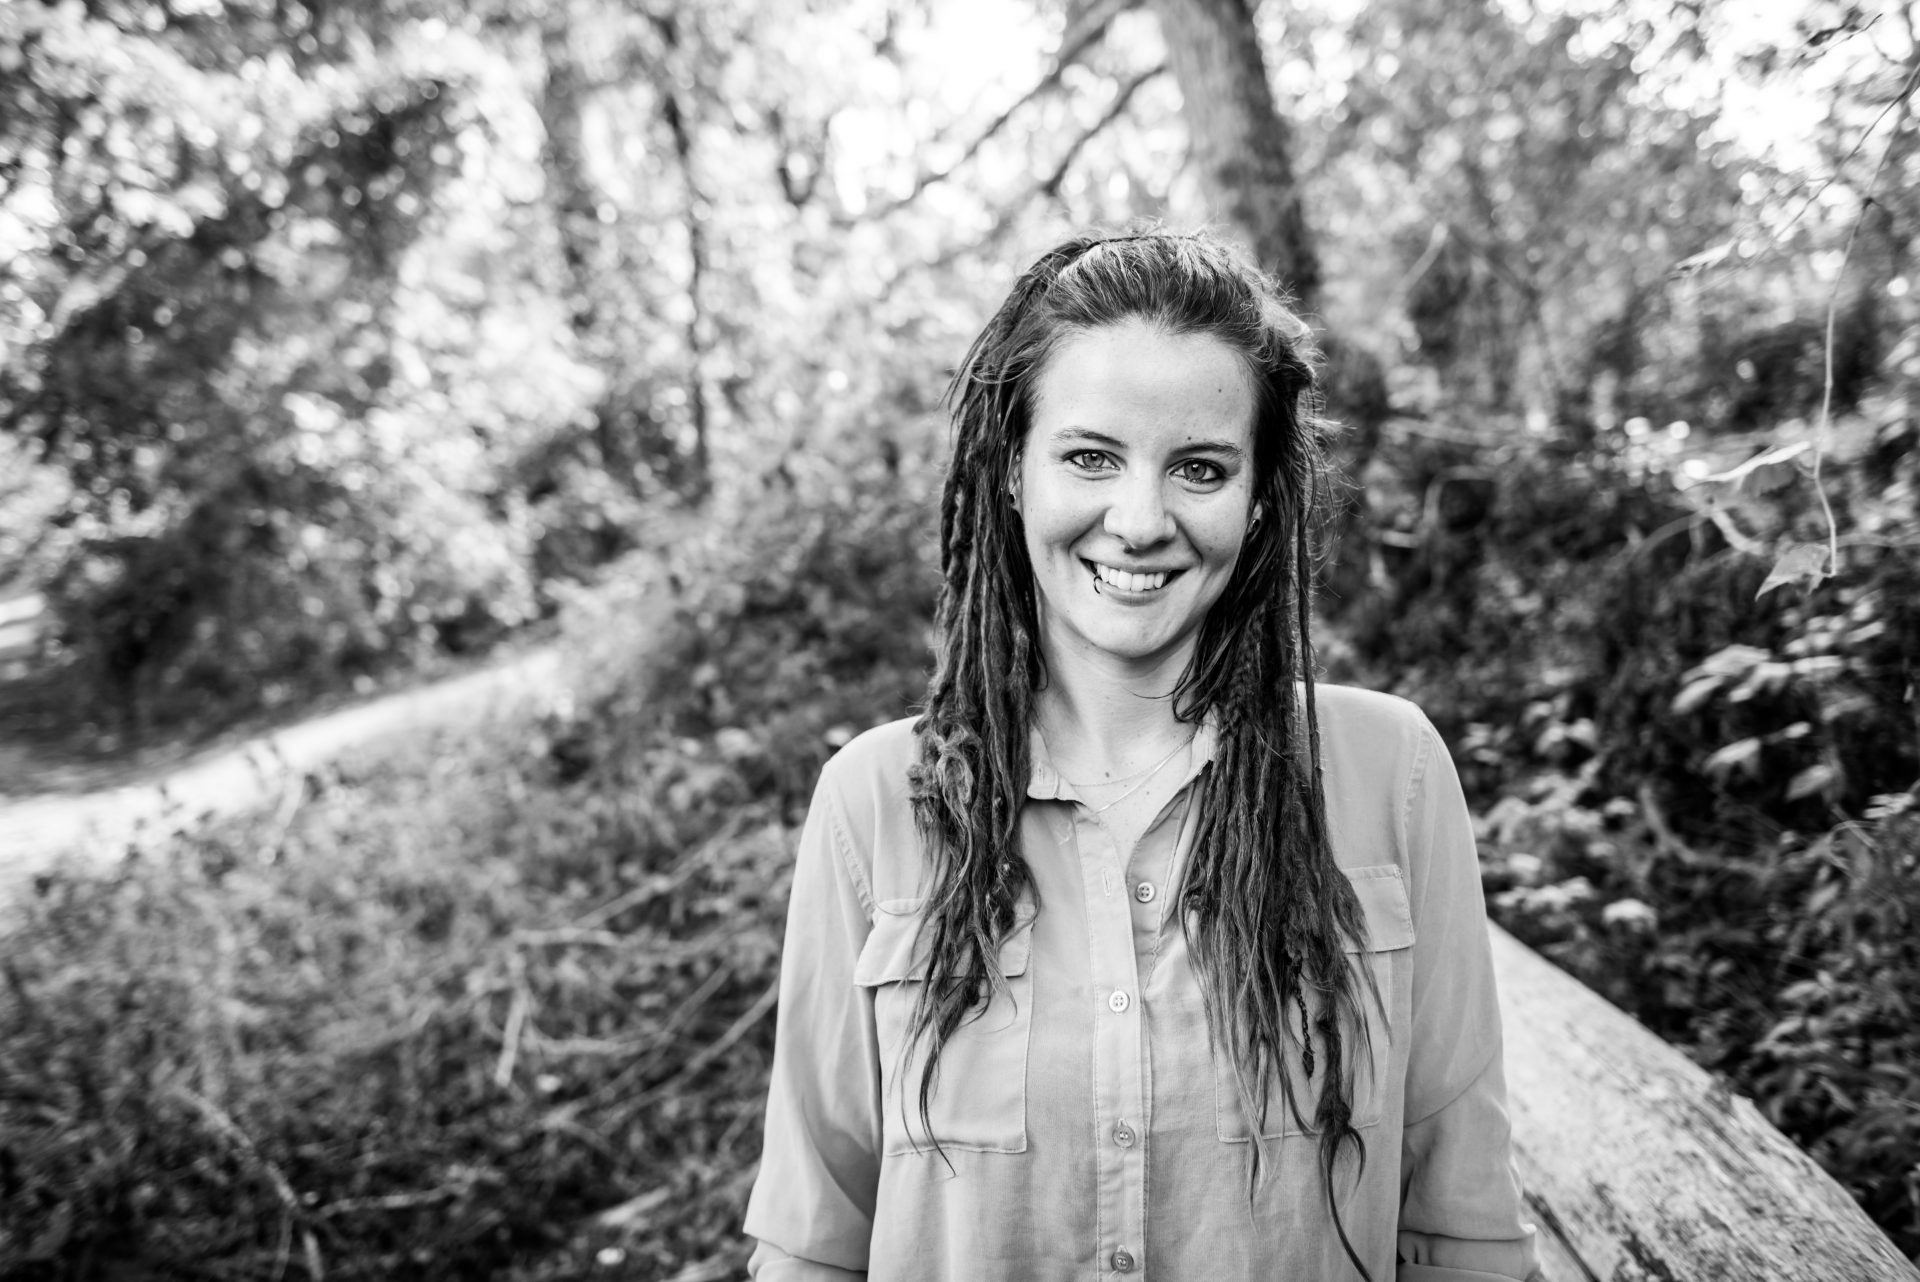 Black & white photo of Rachel, a white woman with dark dreadlocks wearing a button-down top, standing outdoors.